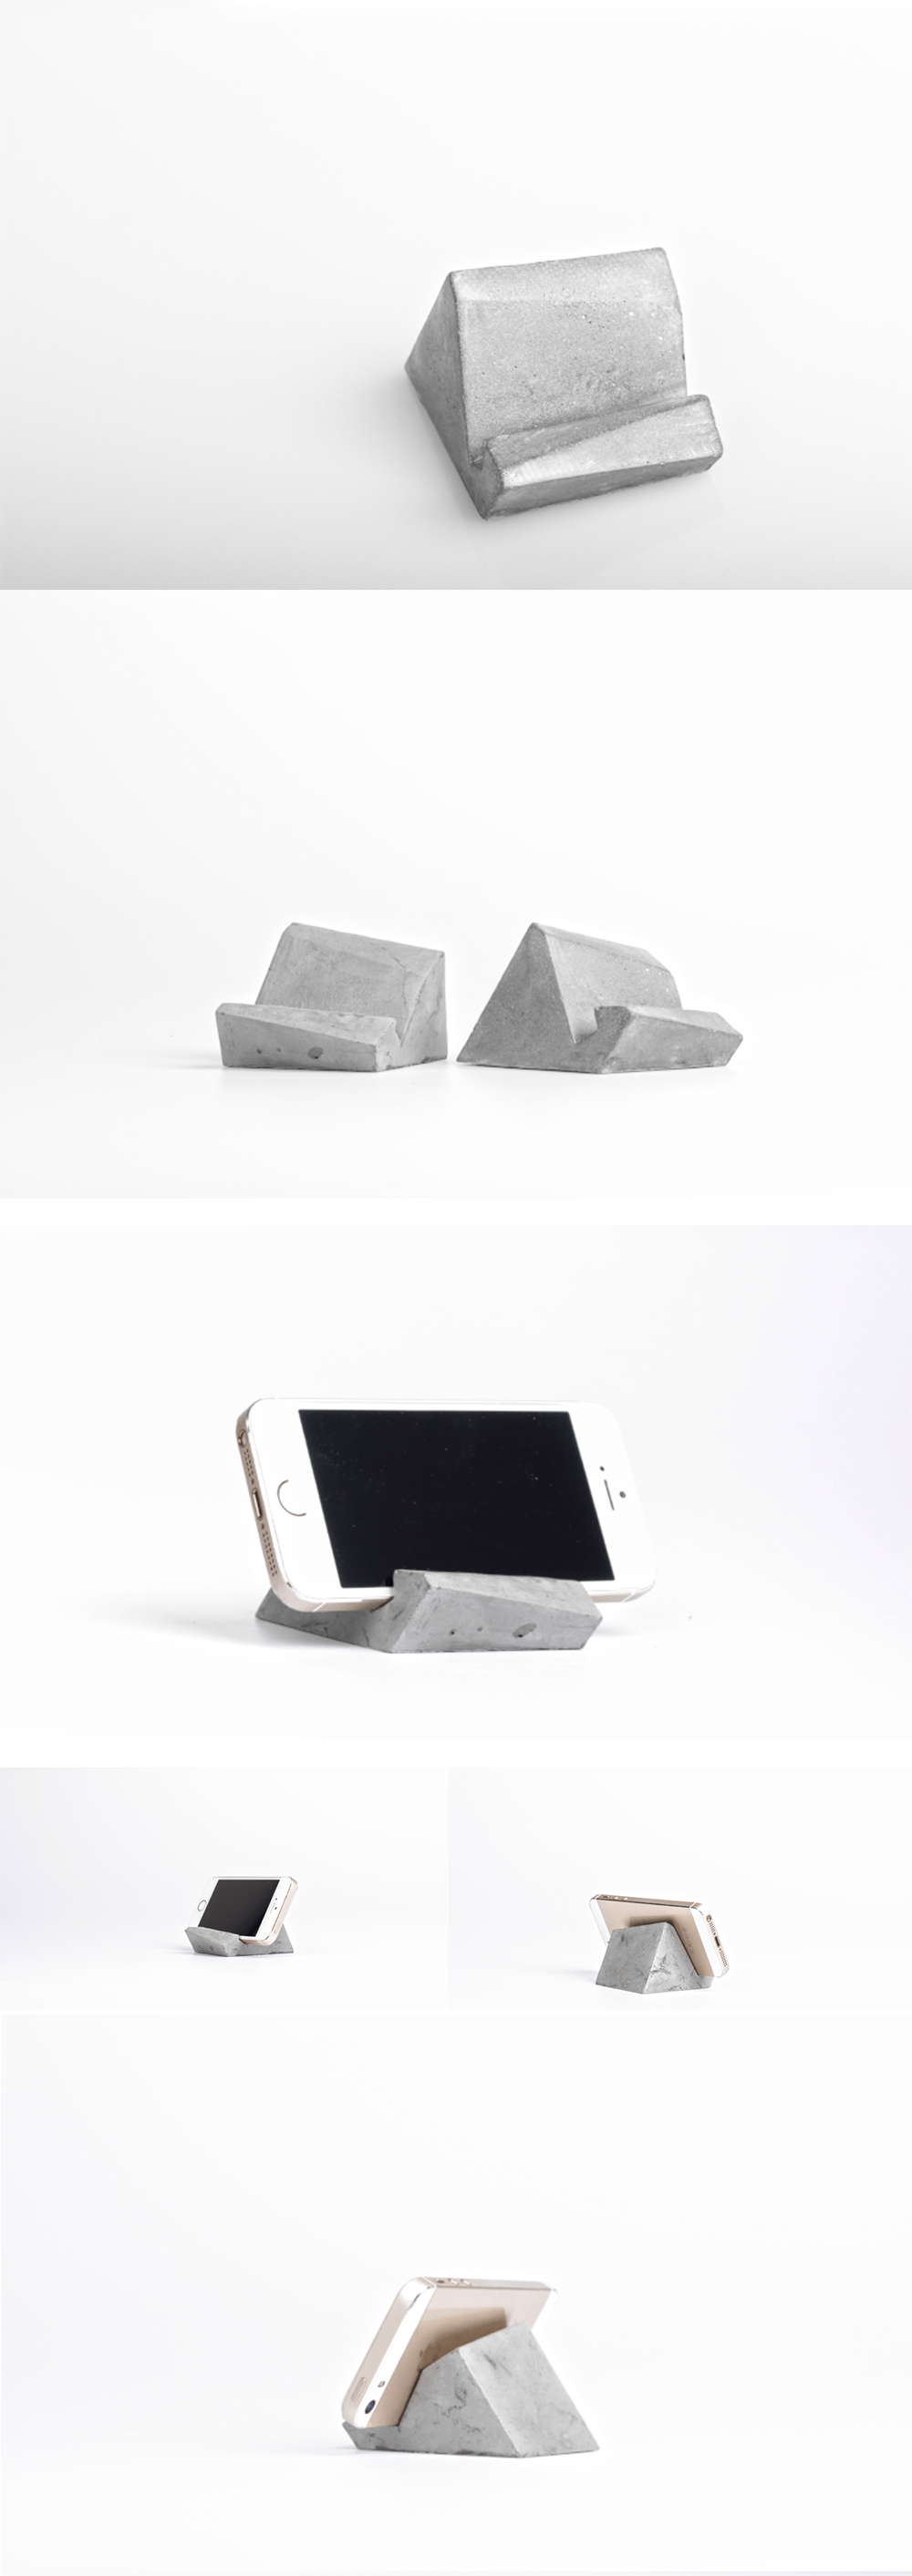 Concrete Phone Stand Free your hands